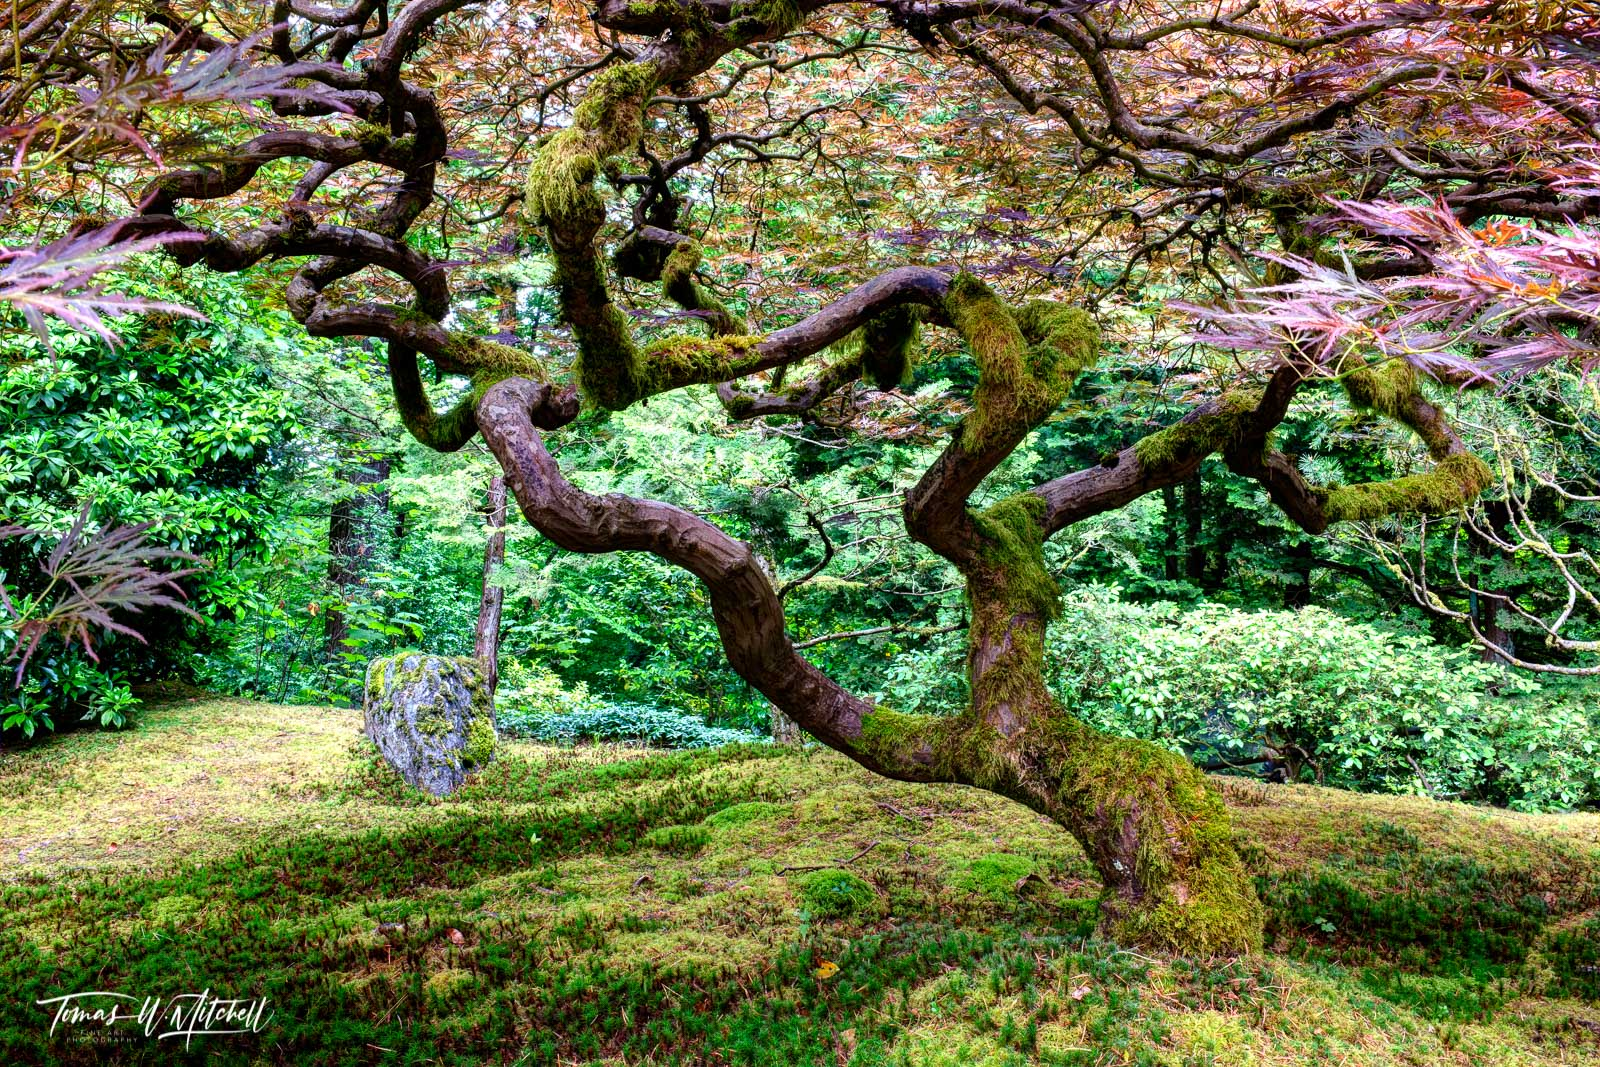 limited edition, fine art, prints, japanese garden, portland oregon, tree of love, photograph, summer, moss, green, lace leaf maples, branches, heart, photo